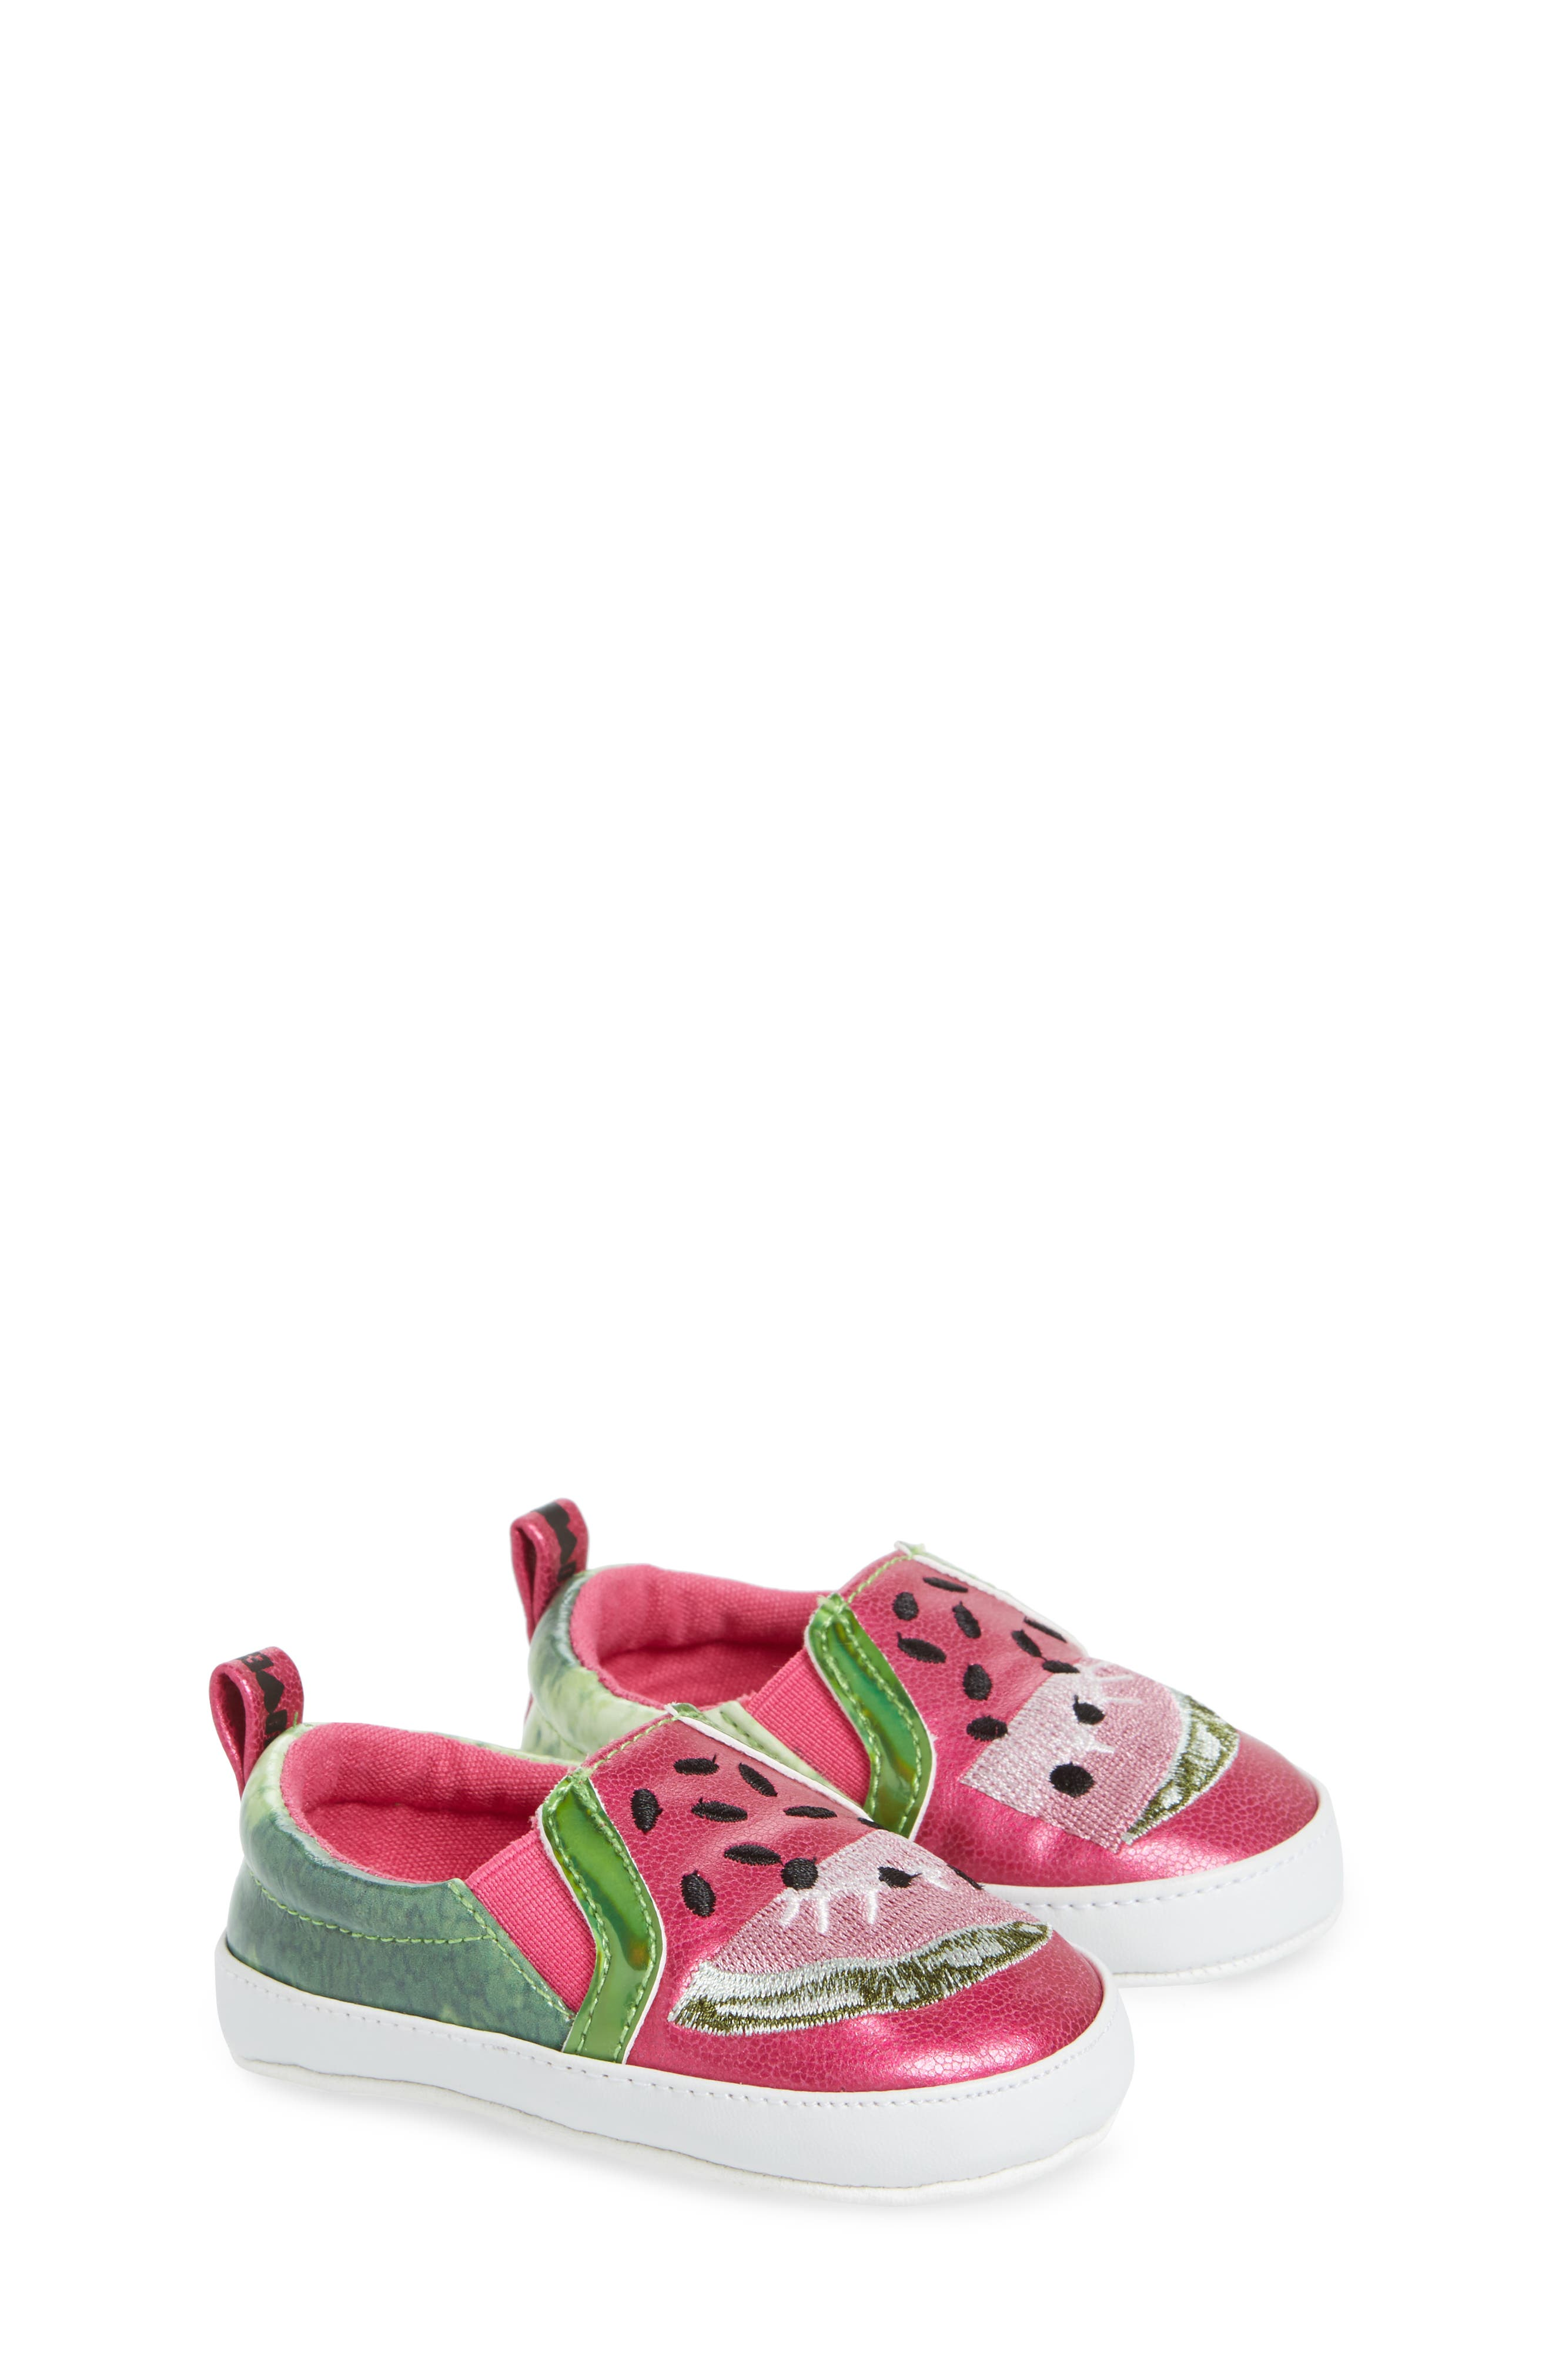 Baby Blane Watermelon Sneaker,                             Alternate thumbnail 3, color,                             Fuchsia Faux Leather